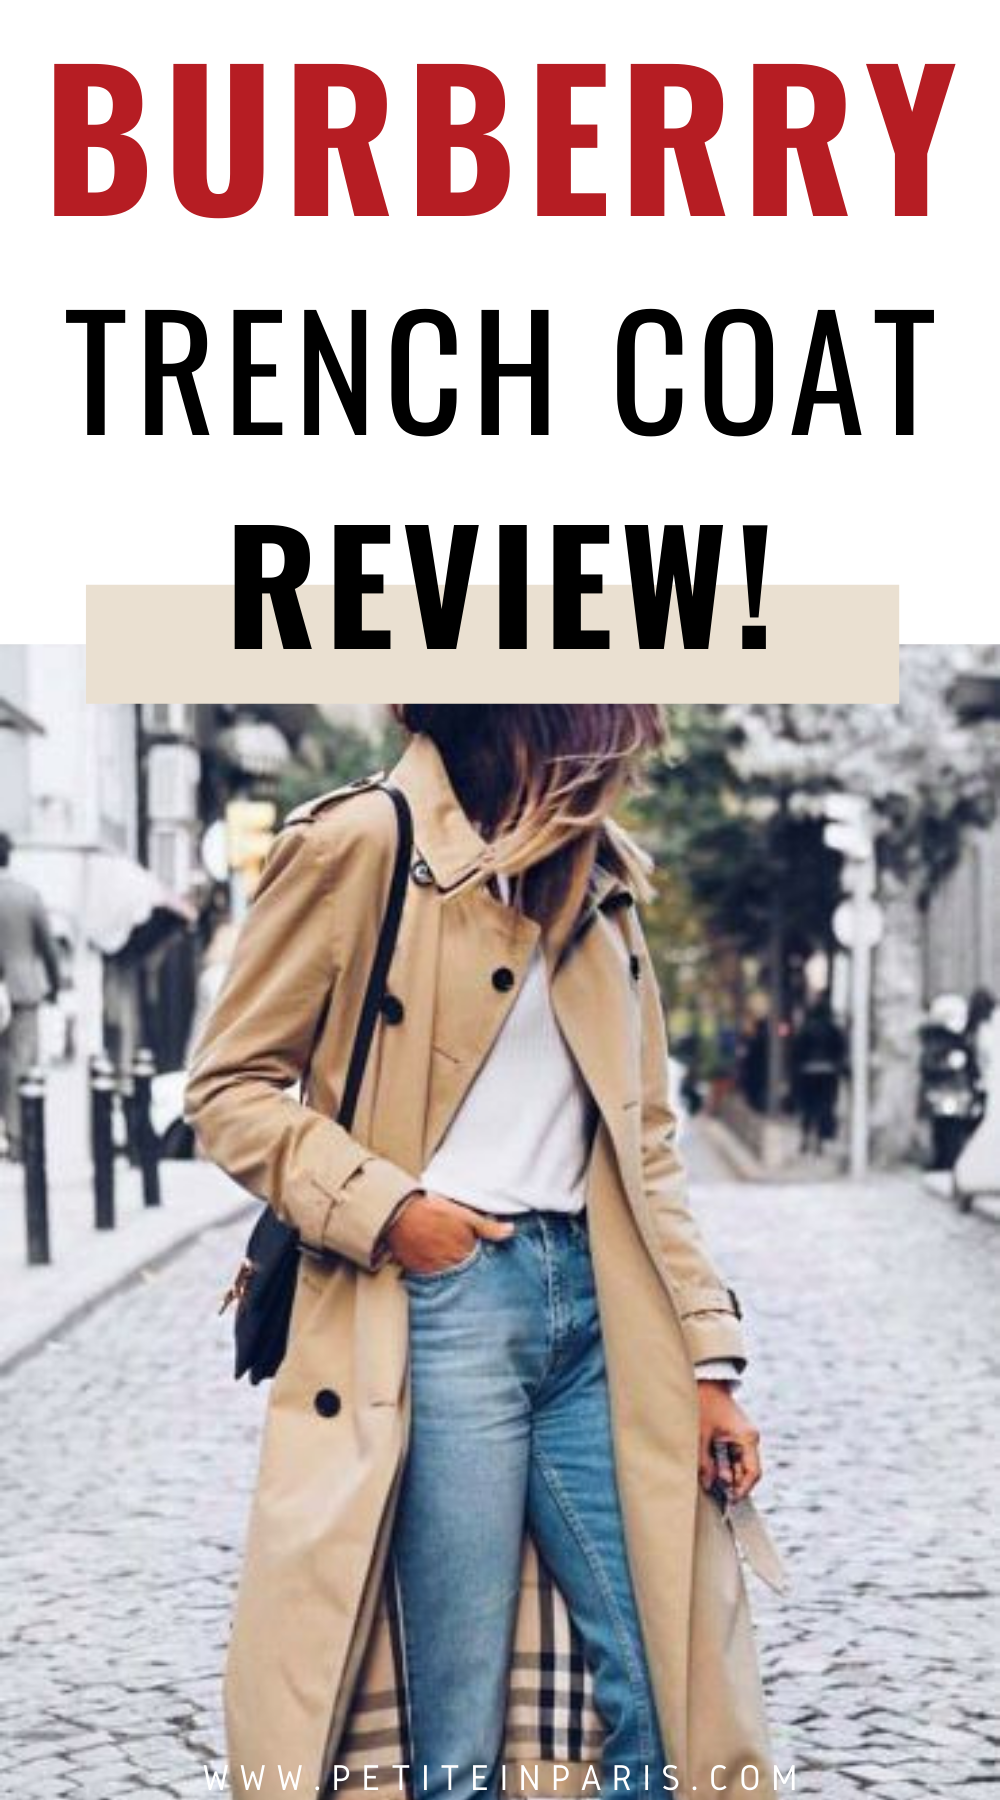 Burberry Trench Coat Review